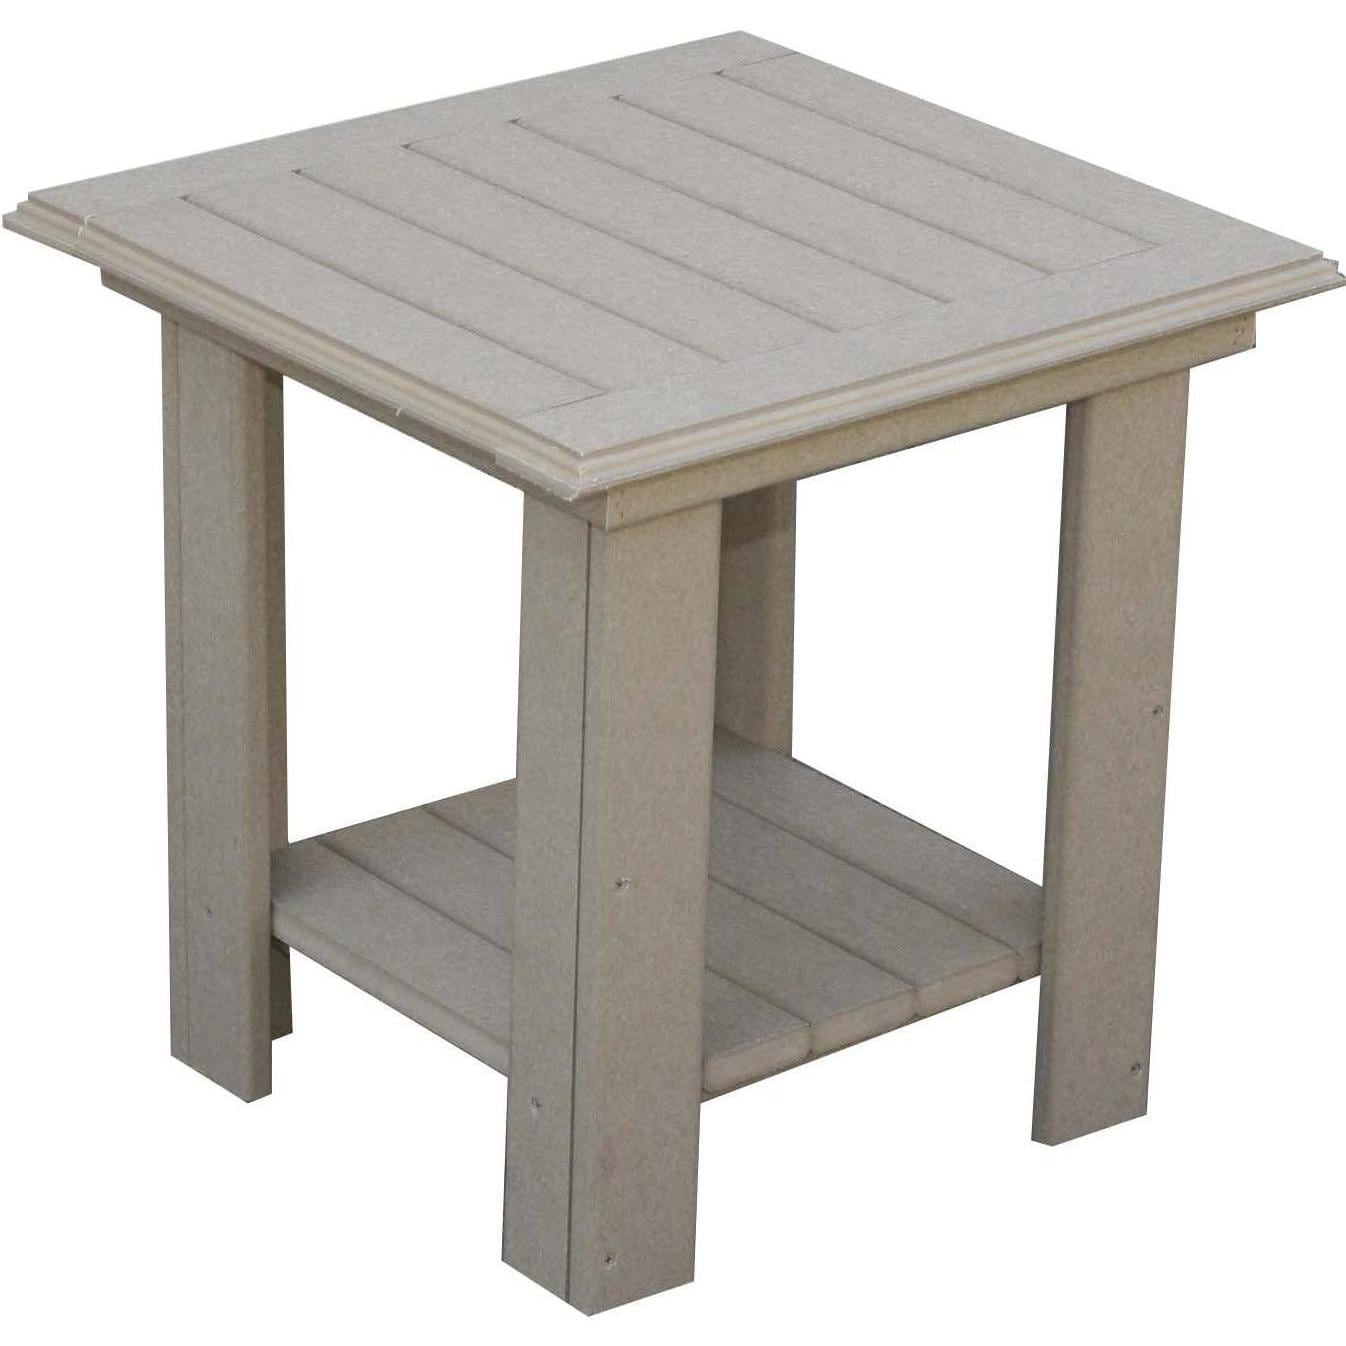 Eagle one adirondack 2 person recycled plastic patio for Adirondack side table plans